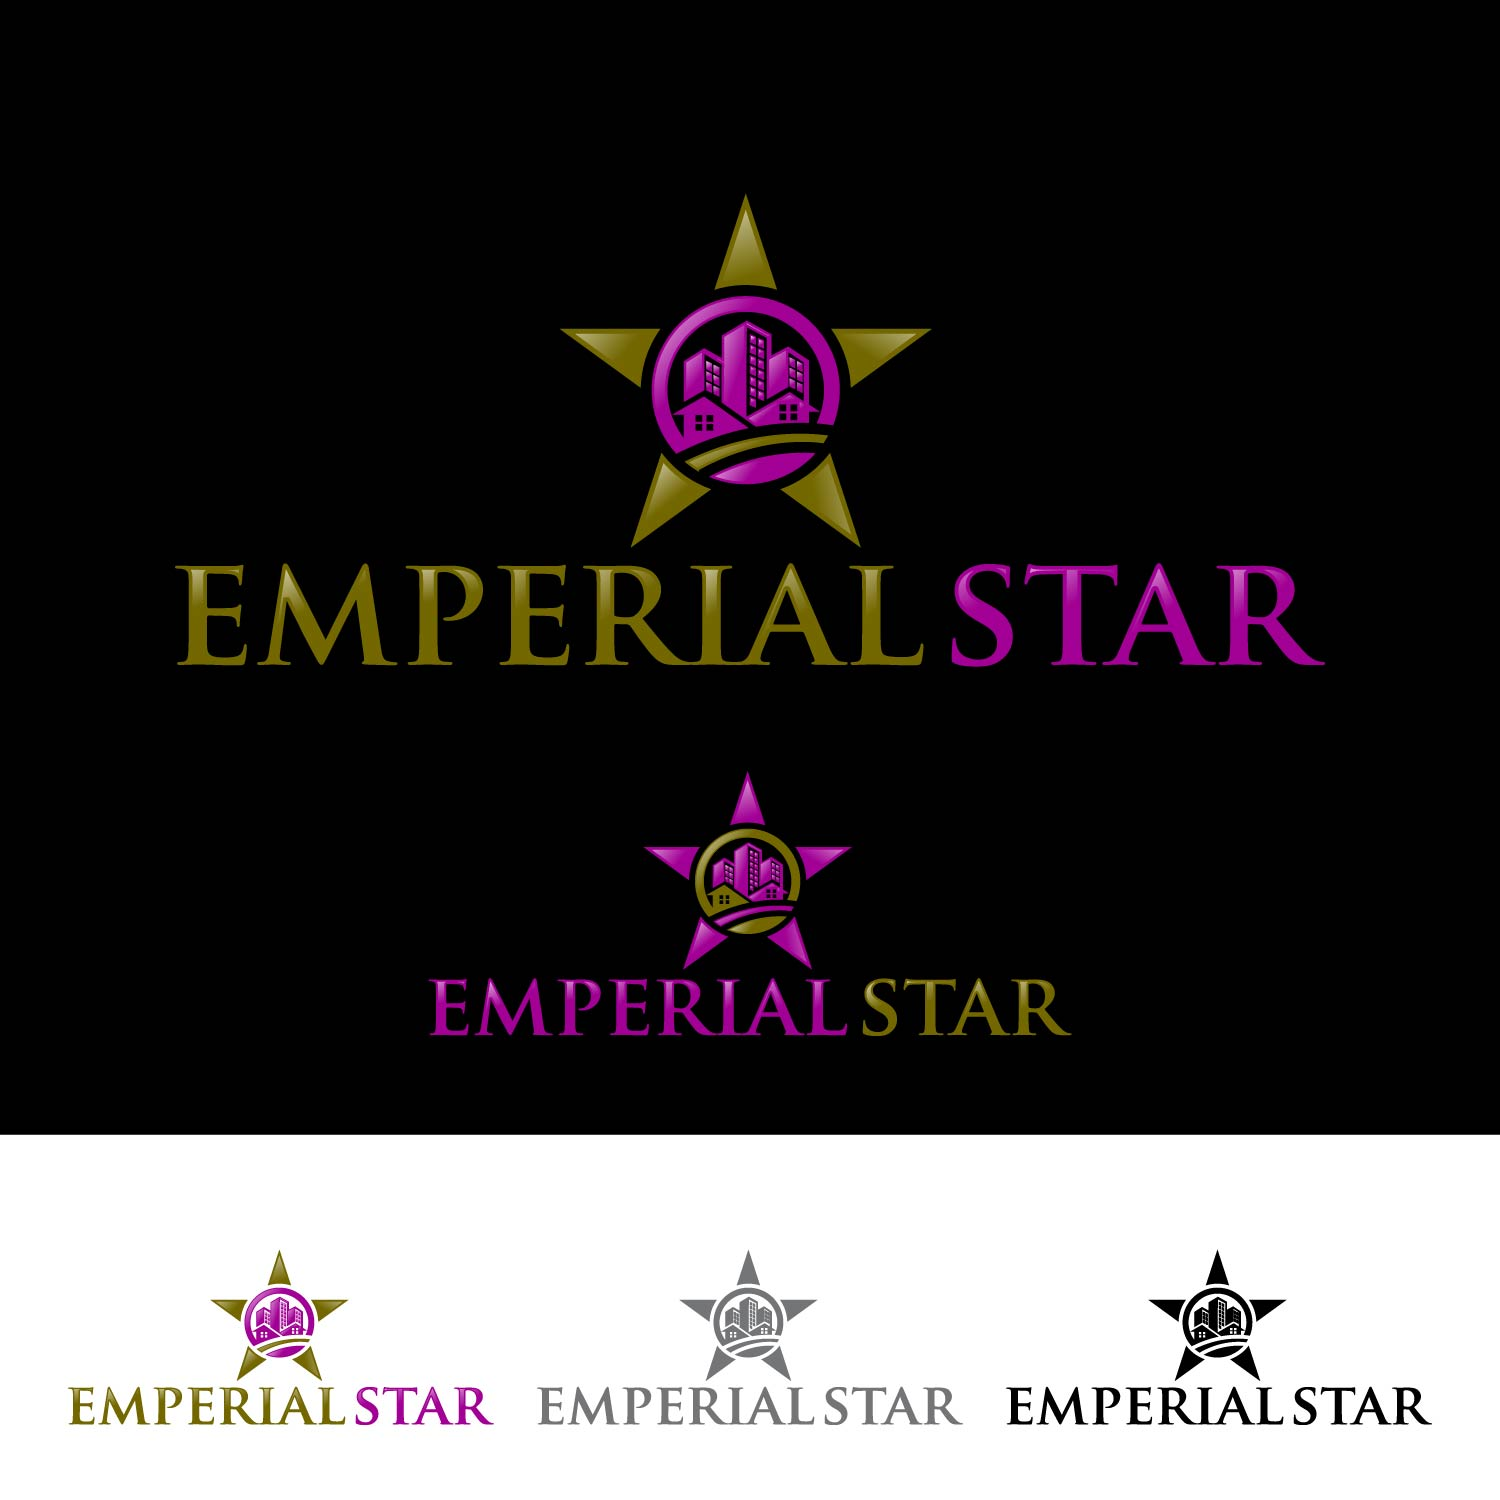 Logo Design by lagalag - Entry No. 62 in the Logo Design Contest Emperial Star Logo Design.